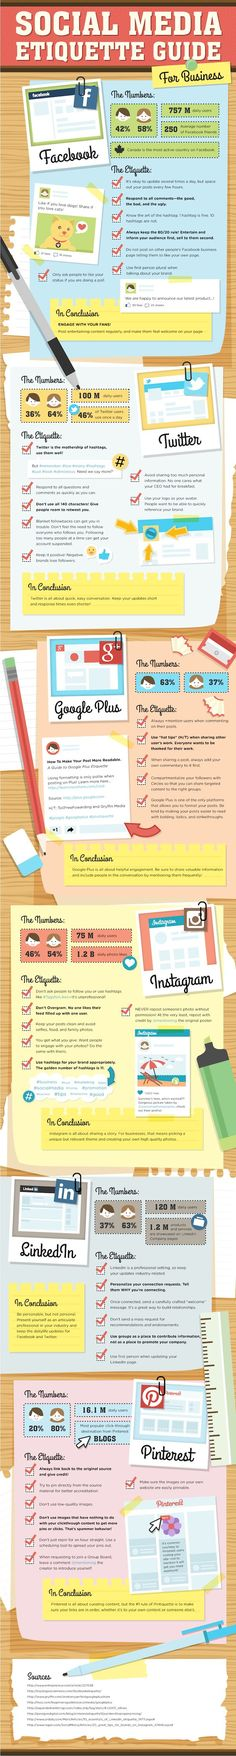 """SOCIAL MEDIA - """"A Social Media Etiquette Guide You Might Find Useful"""". For Business."""